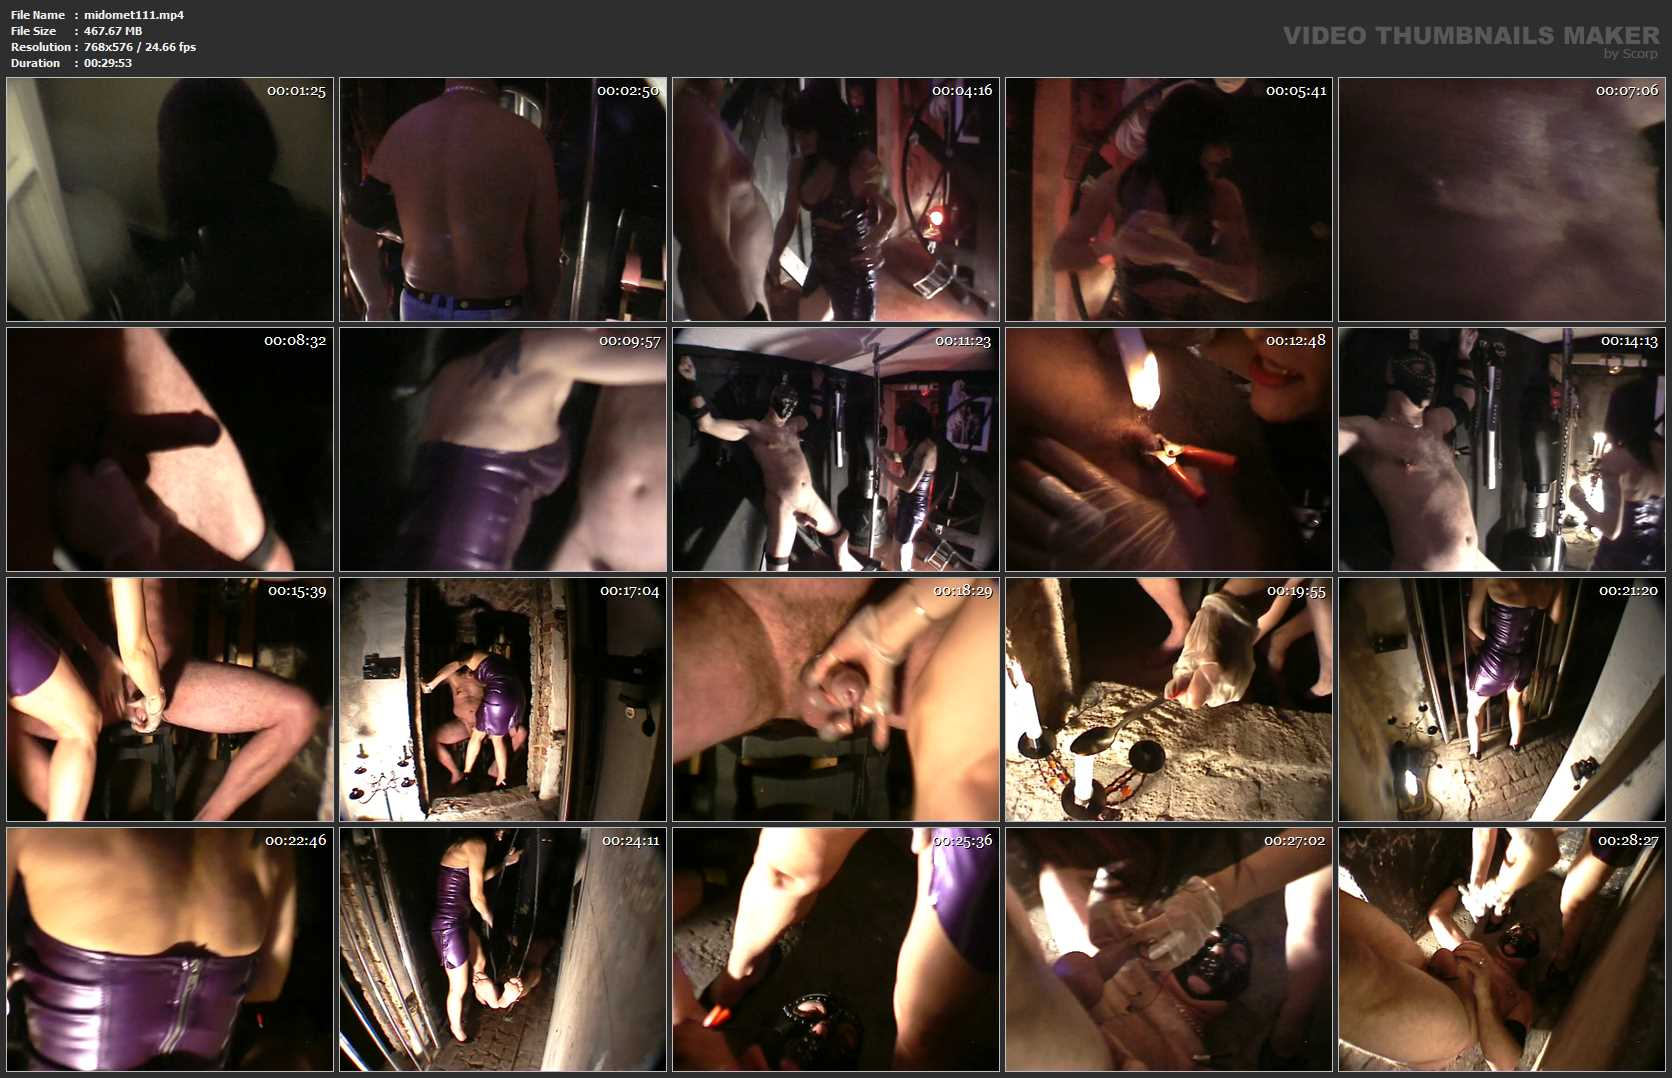 Mistress Dometria In Scene: Kidnapped Off The Streeti - MISTRESS DOMETRIA BDSM CLIPS / BRIGHTONDUNGEON - SD/576p/MP4